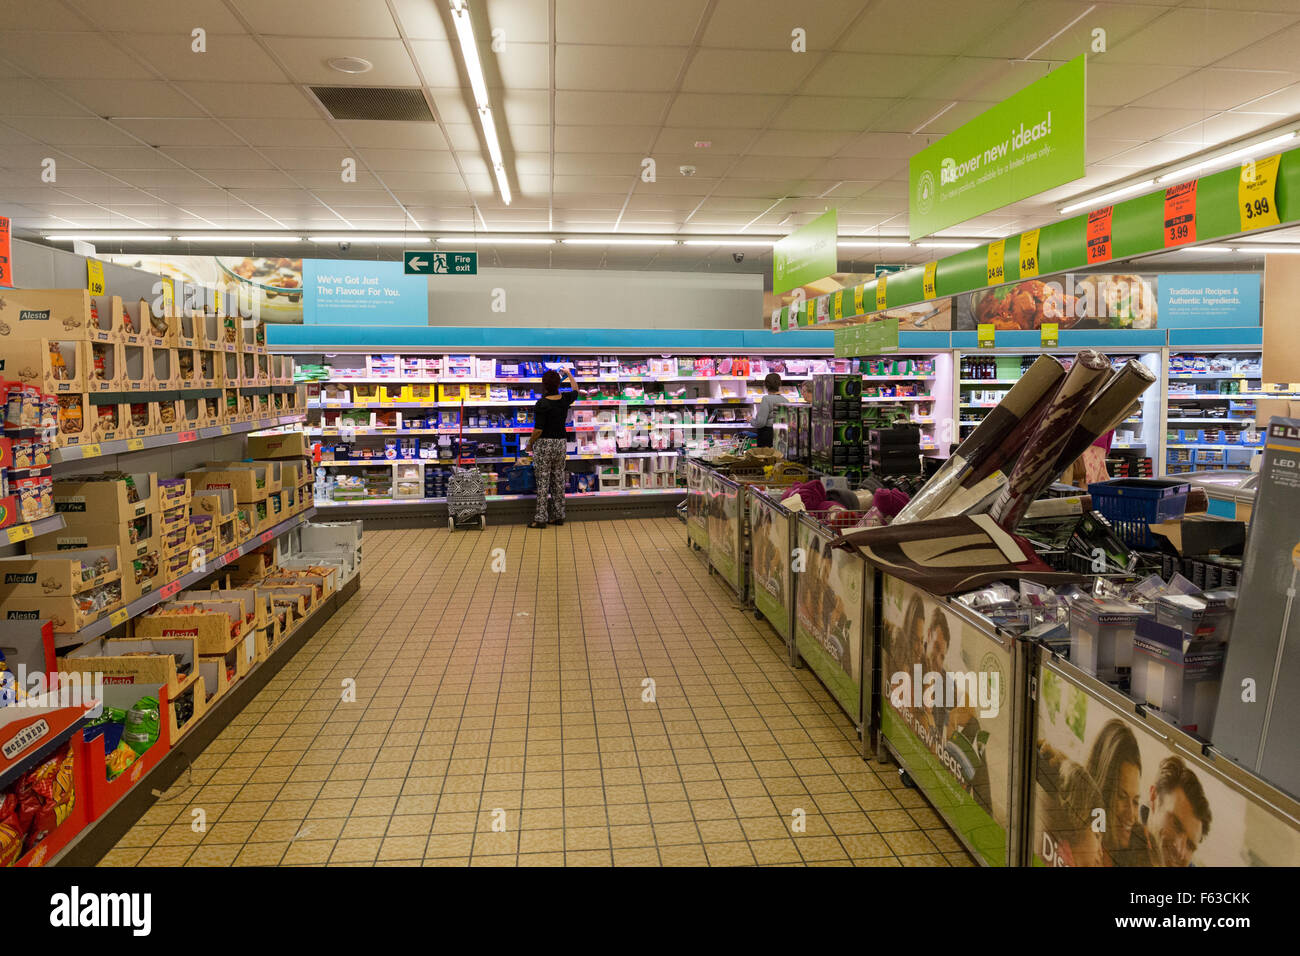 Lidl supermarket shopping aisle at Lidl, Winton Bournemouth UK - Stock Image